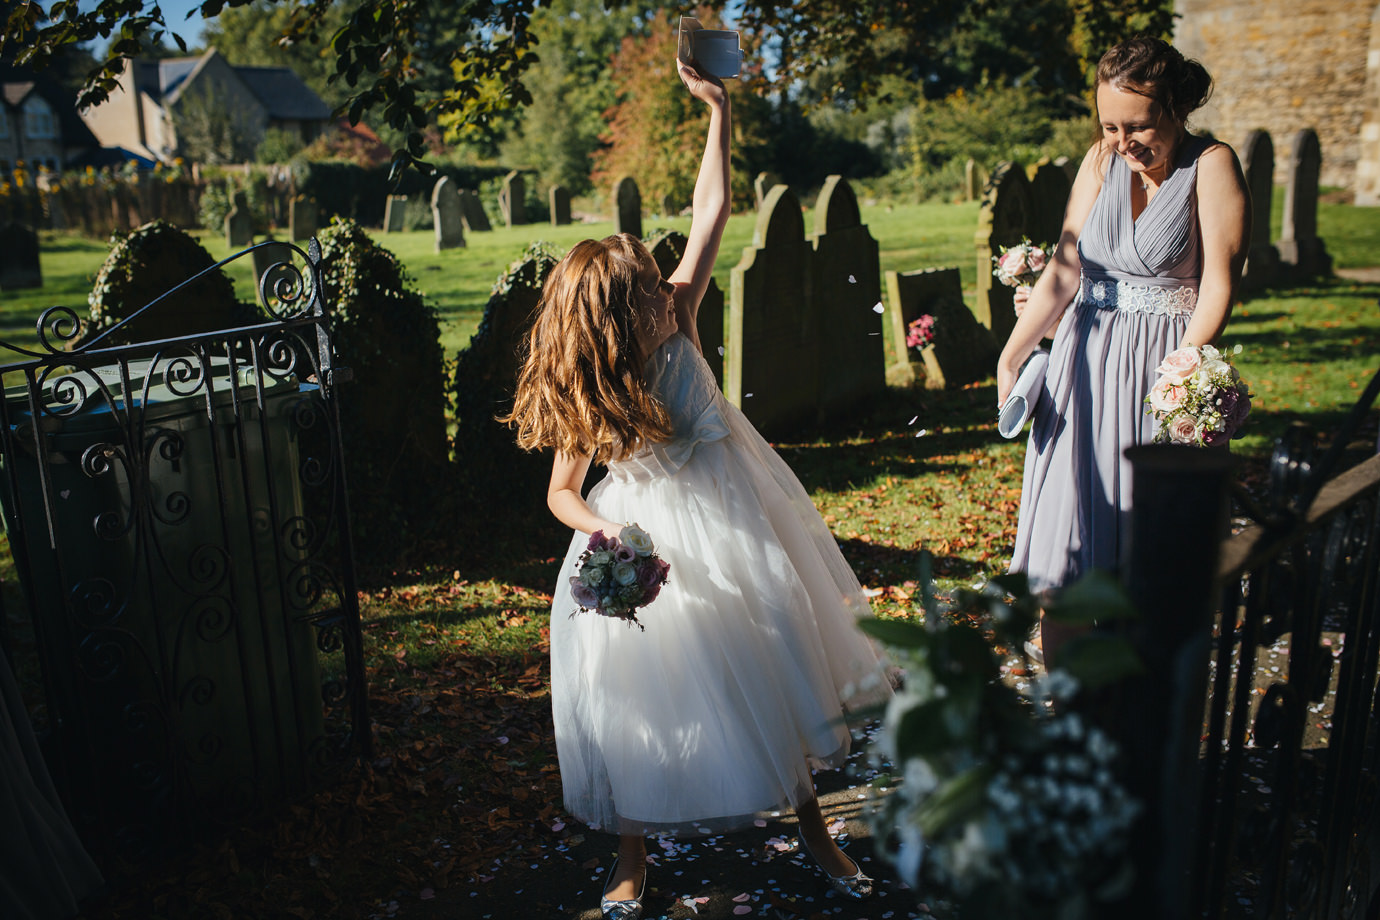 Finishing off the confetti moments wedding photography